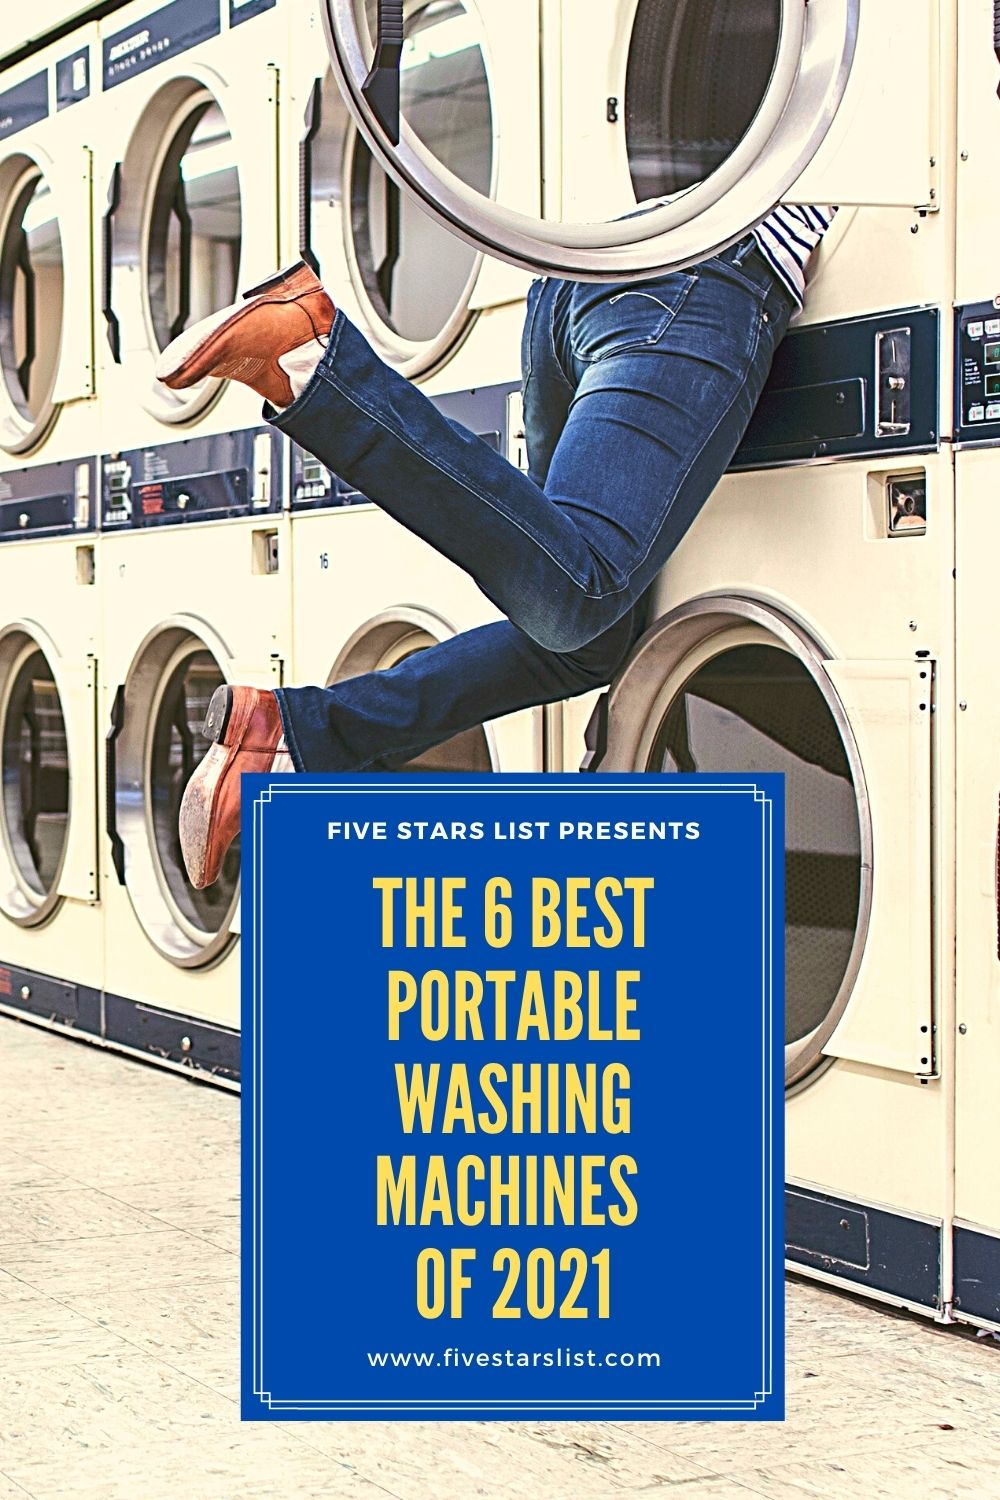 The 6 Best Portable Washing Machines of 2021